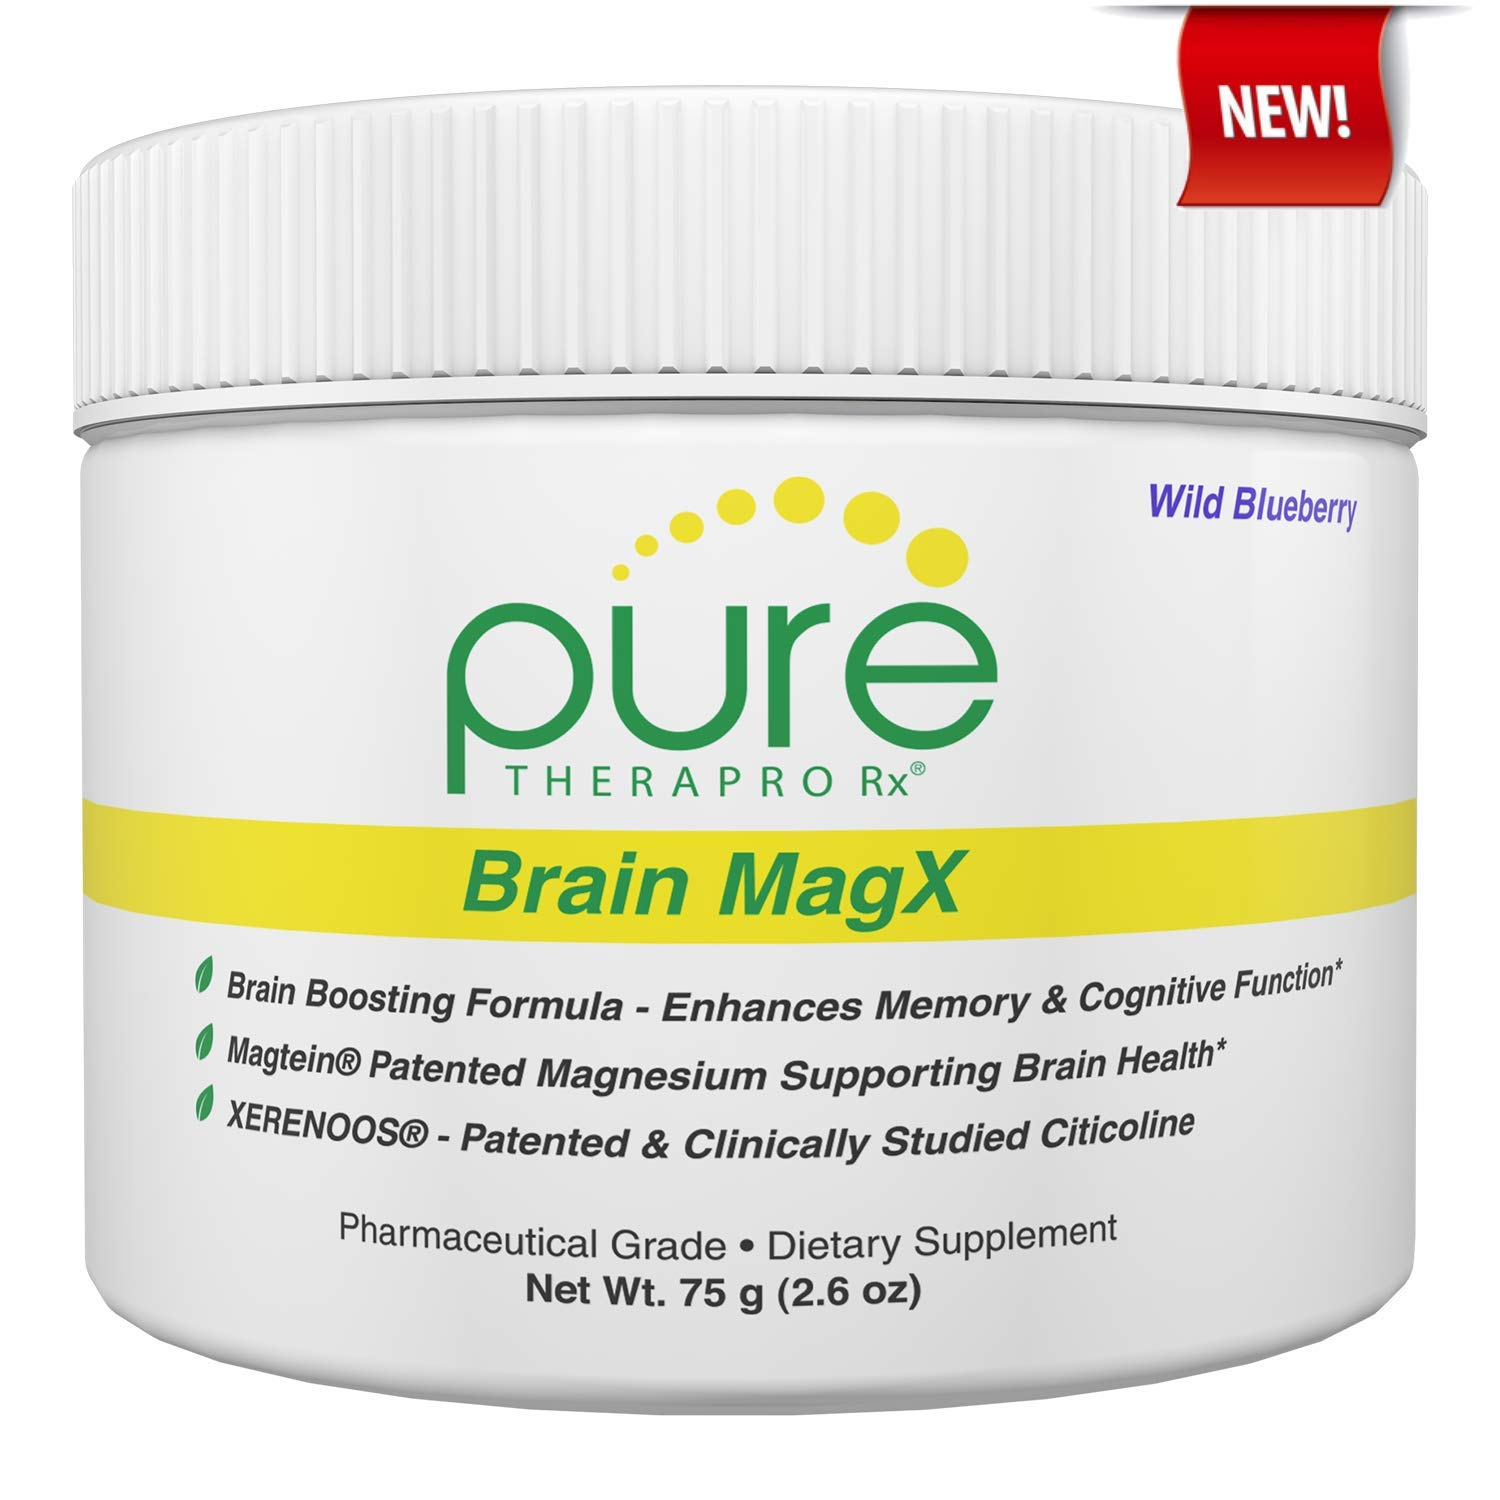 Brain MagX - Wild Blueberry 30 Servings | Nootropic Brain Boosting Formula Containing: Magtein, Xerenoos (Citicoline) & Huperzine A | Enhance Focus, Boost Concentration & Improve Memory | Vegan by Pure Therapro Rx